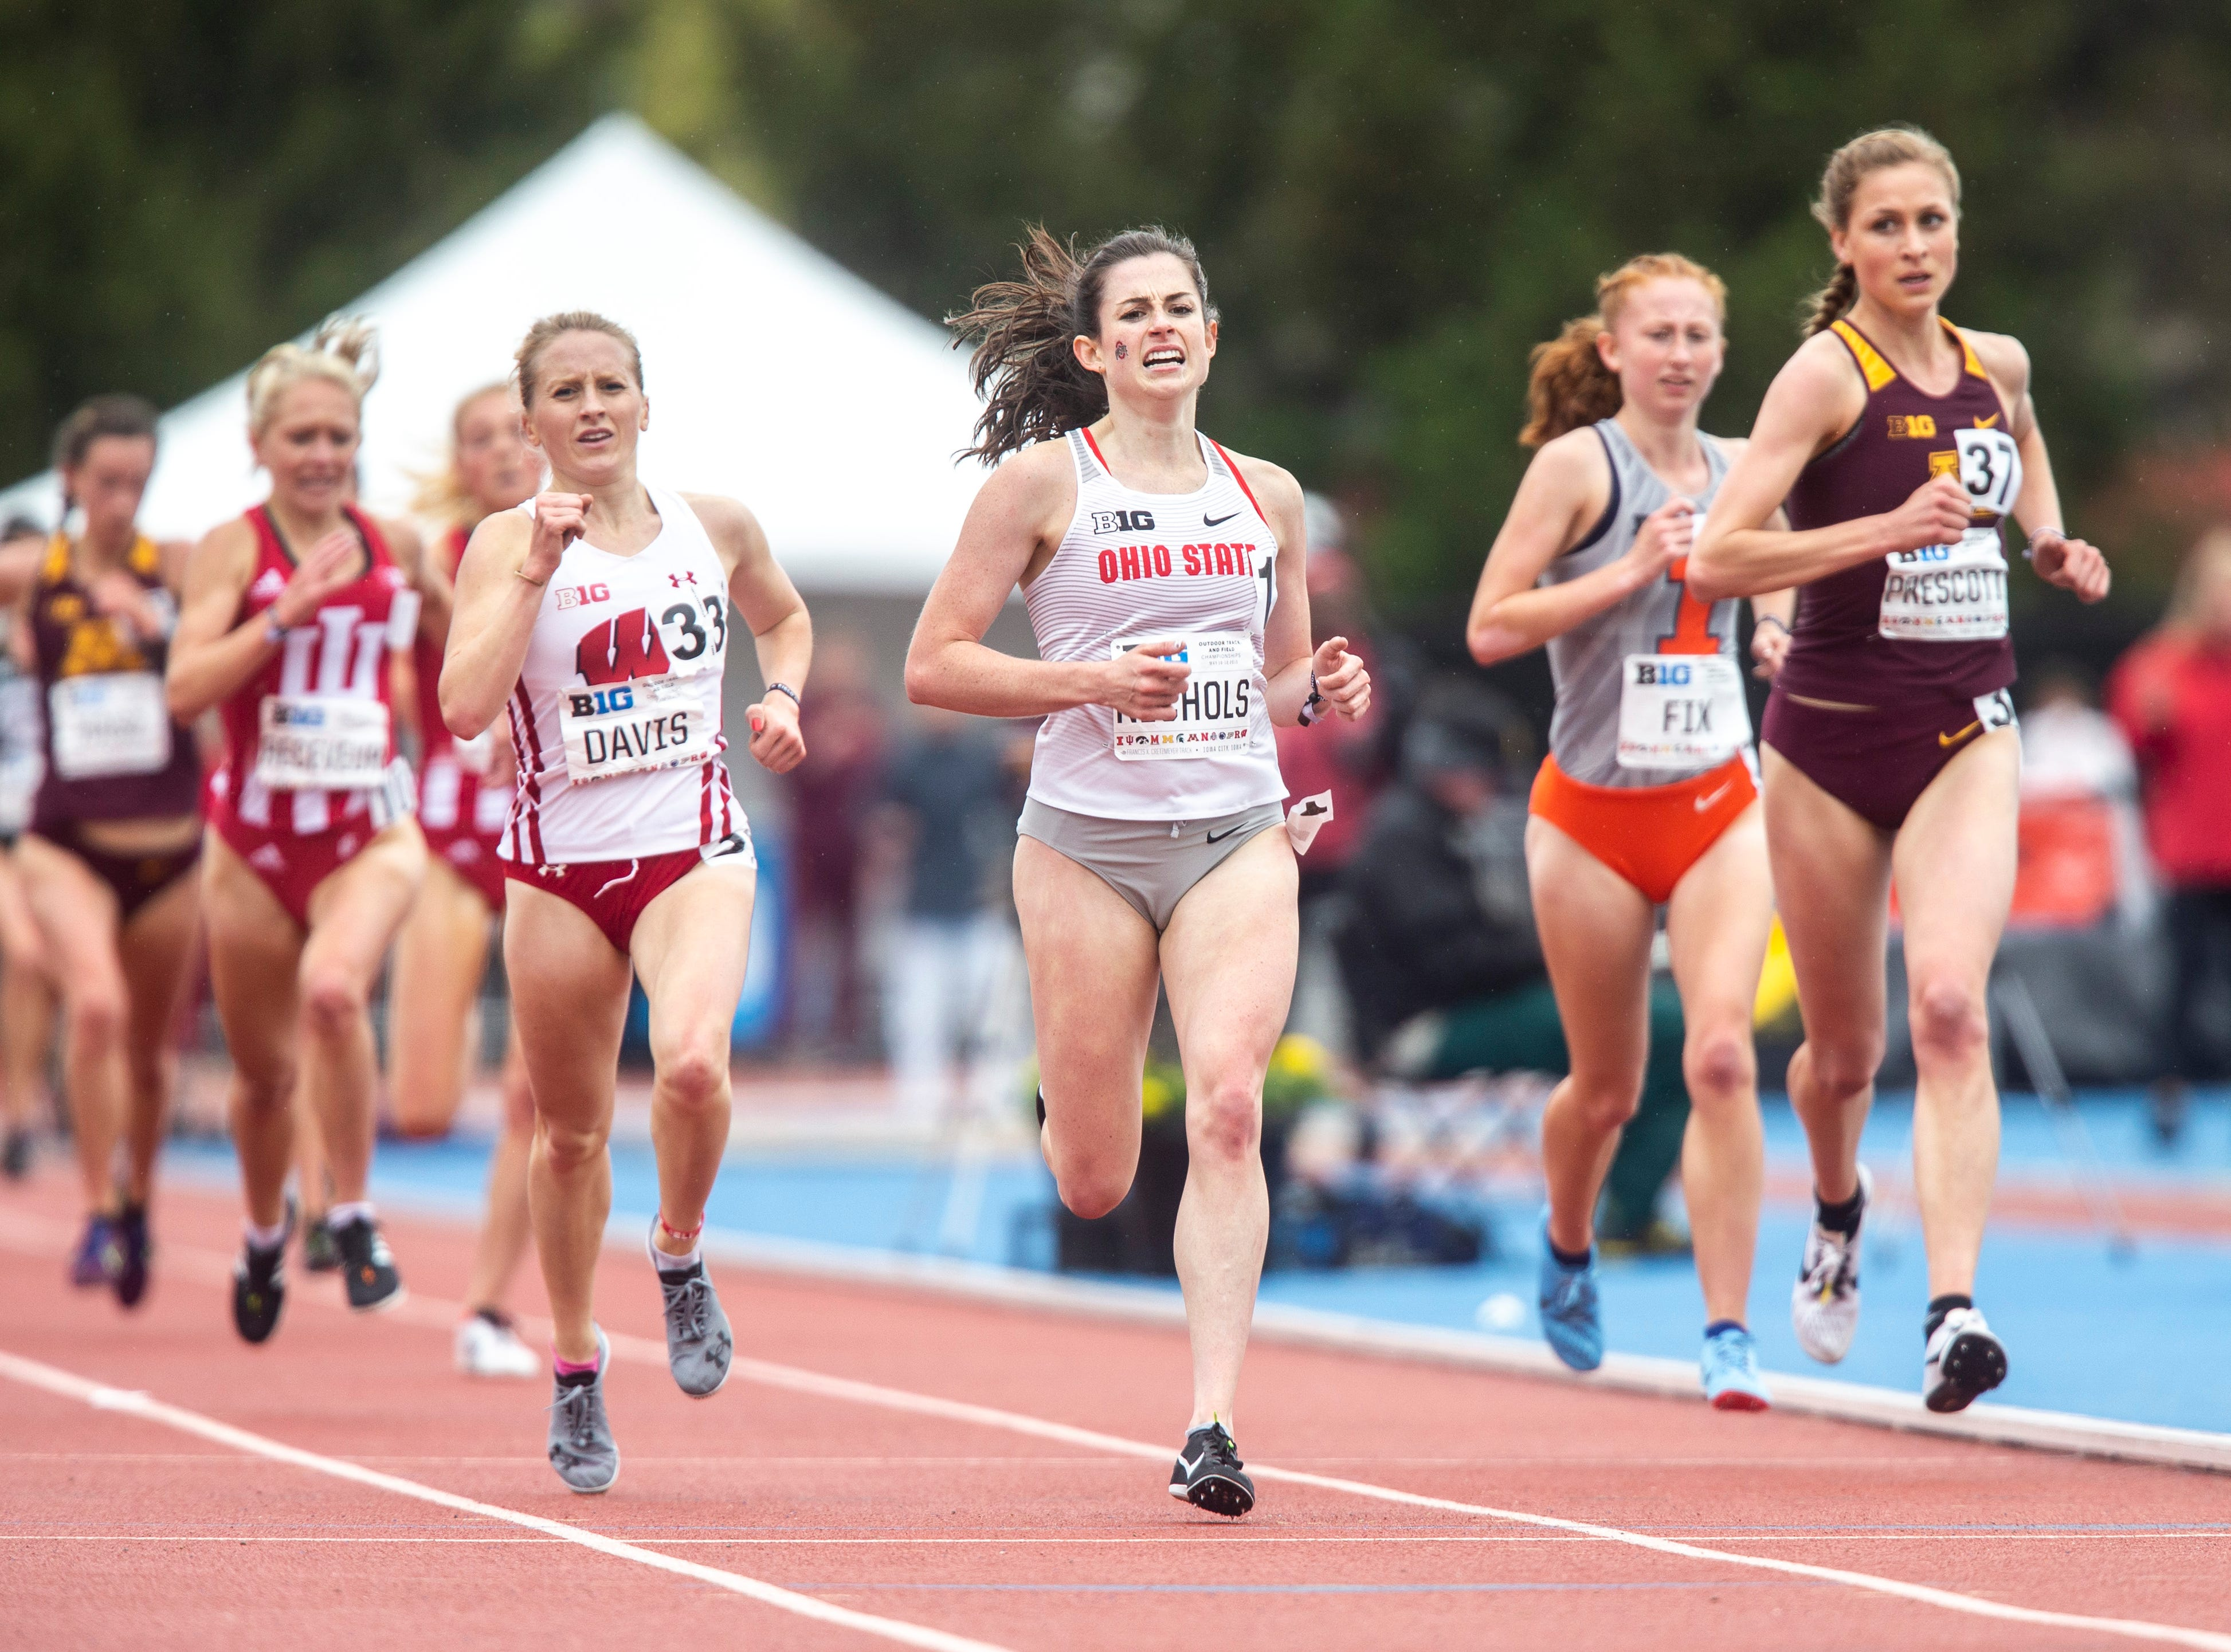 Ohio State sophomore Abby Nichols crosses the finish line in the 5,000 meter finals during the final day of Big Ten track and field outdoor championships, Sunday, May 12, 2019, at Francis X. Cretzmeyer Track on the University of Iowa campus in Iowa City, Iowa. Nichols finished first, with a time of 15:56.52, setting a school record.